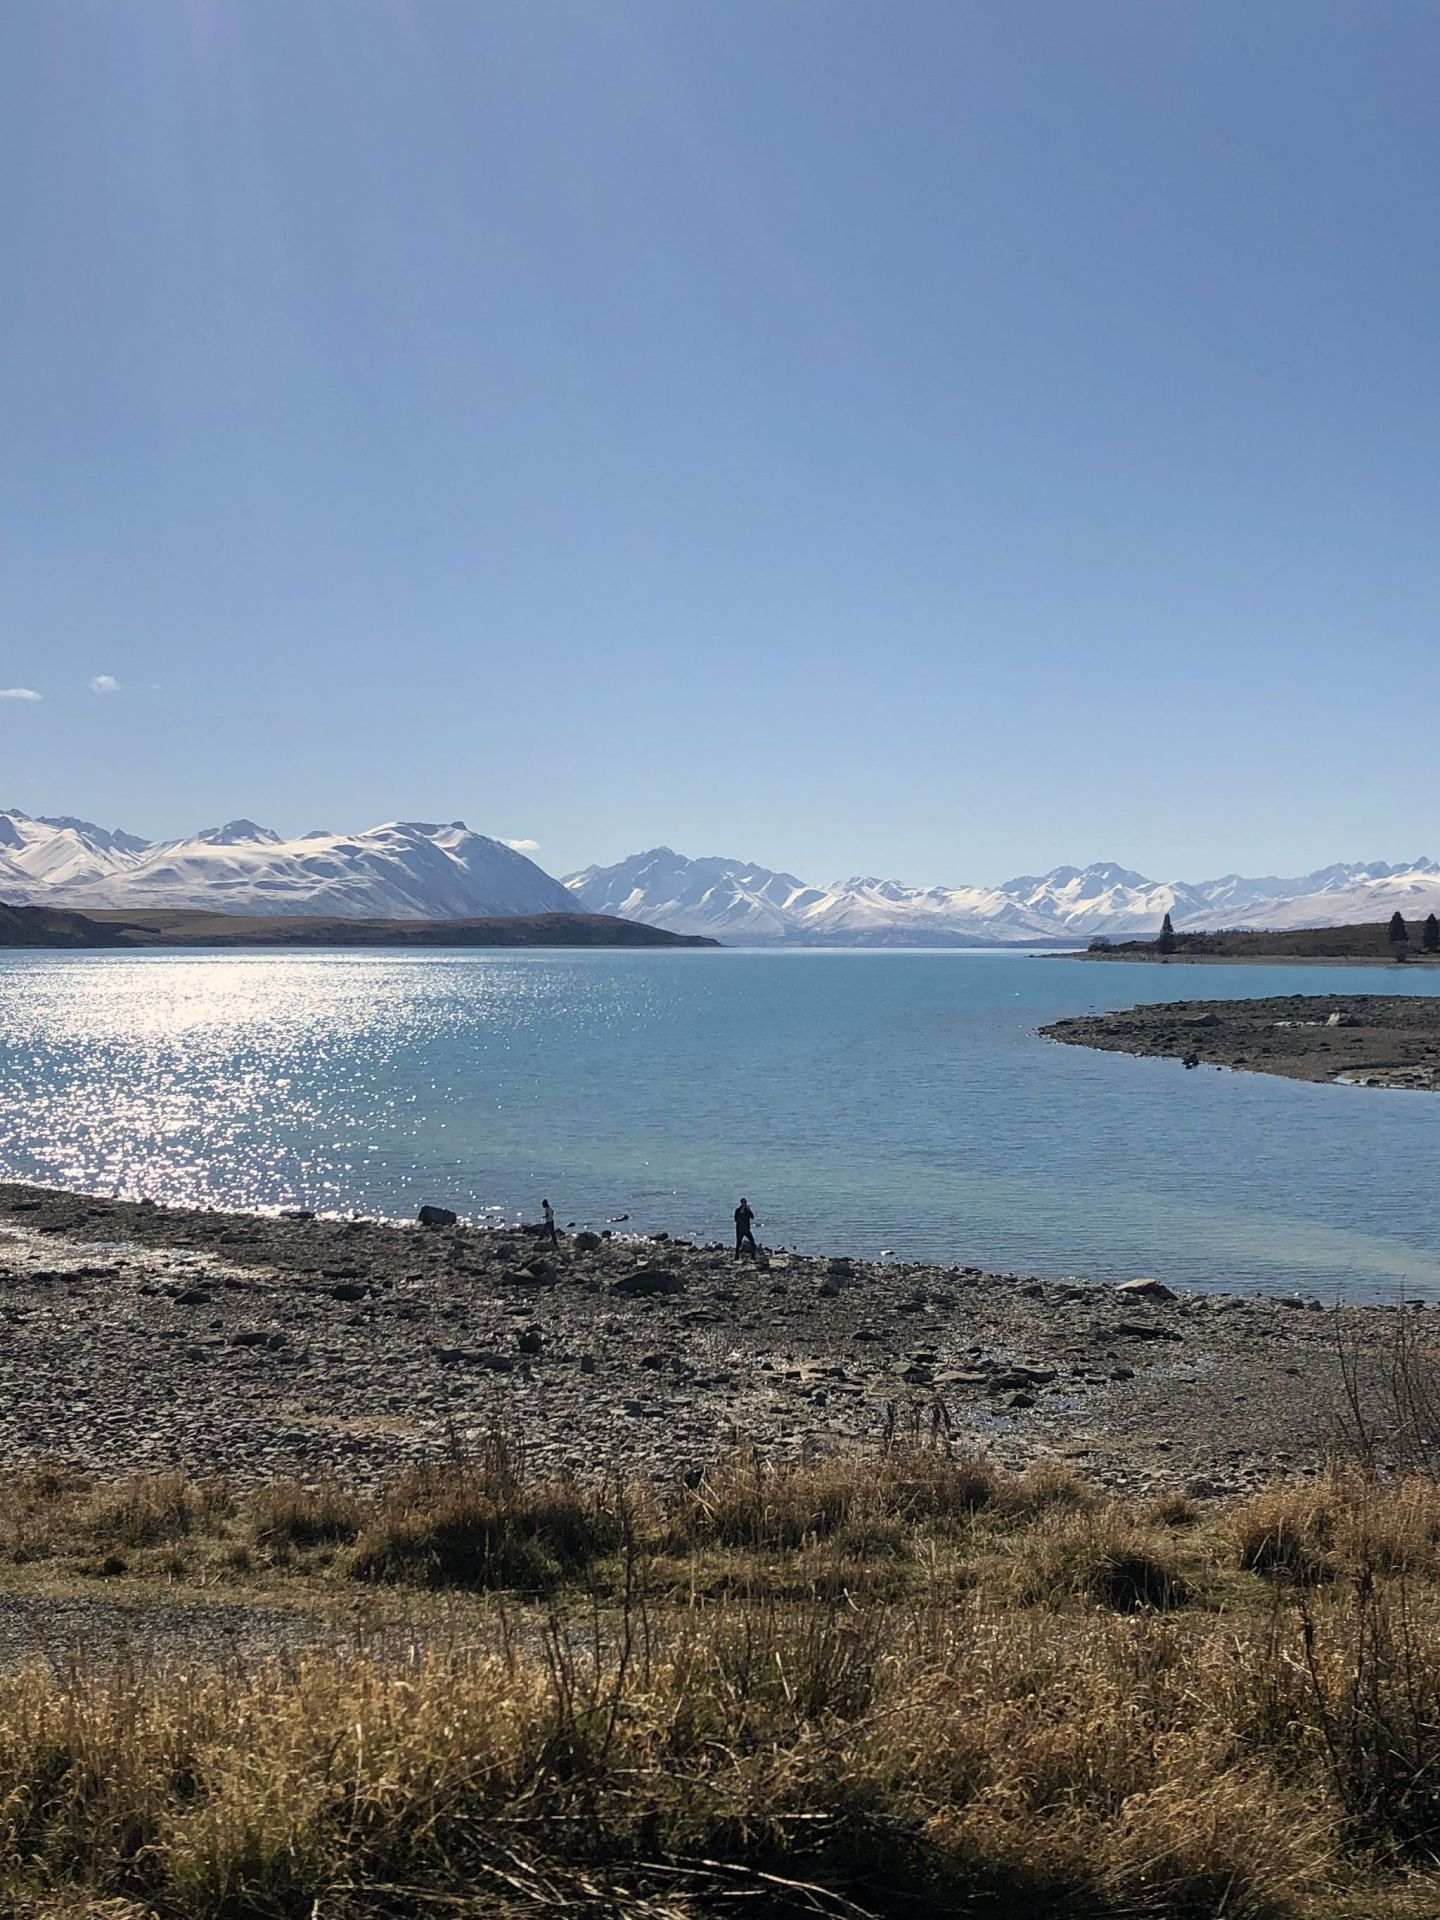 Beautiful view of Tekapo Hot Springs